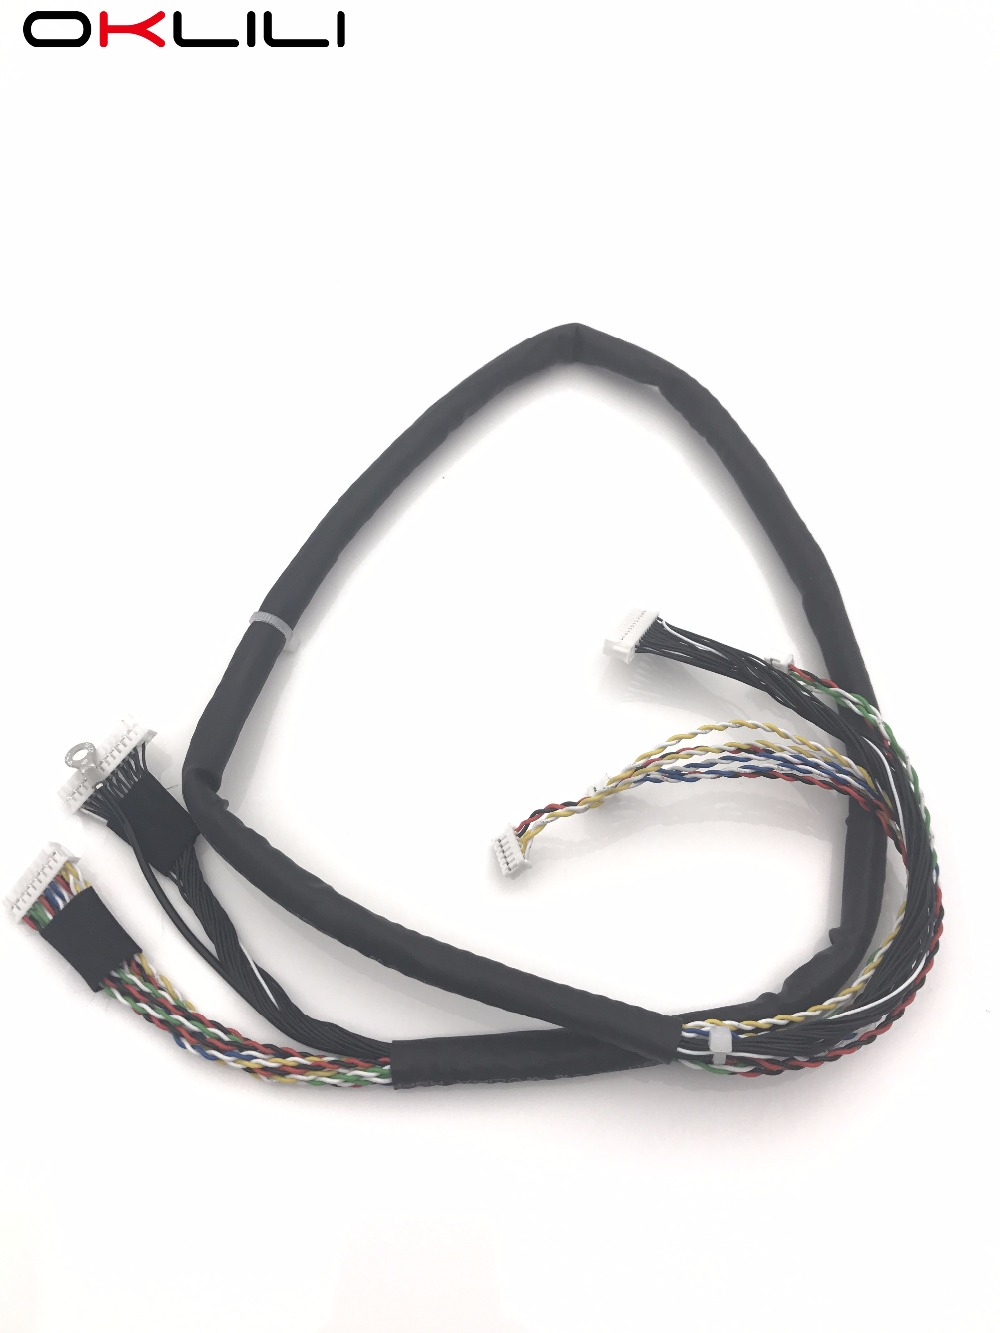 Q7404-50007 ADF Cable Assy Harness for HP LaserJetEnterprise 500 MFP M525 M525dn M525f M525c M575 M575dn M575f M575c M521 M521dn 1 set original x cc483 40002 adf hinge assy for hp clj cm3530 series